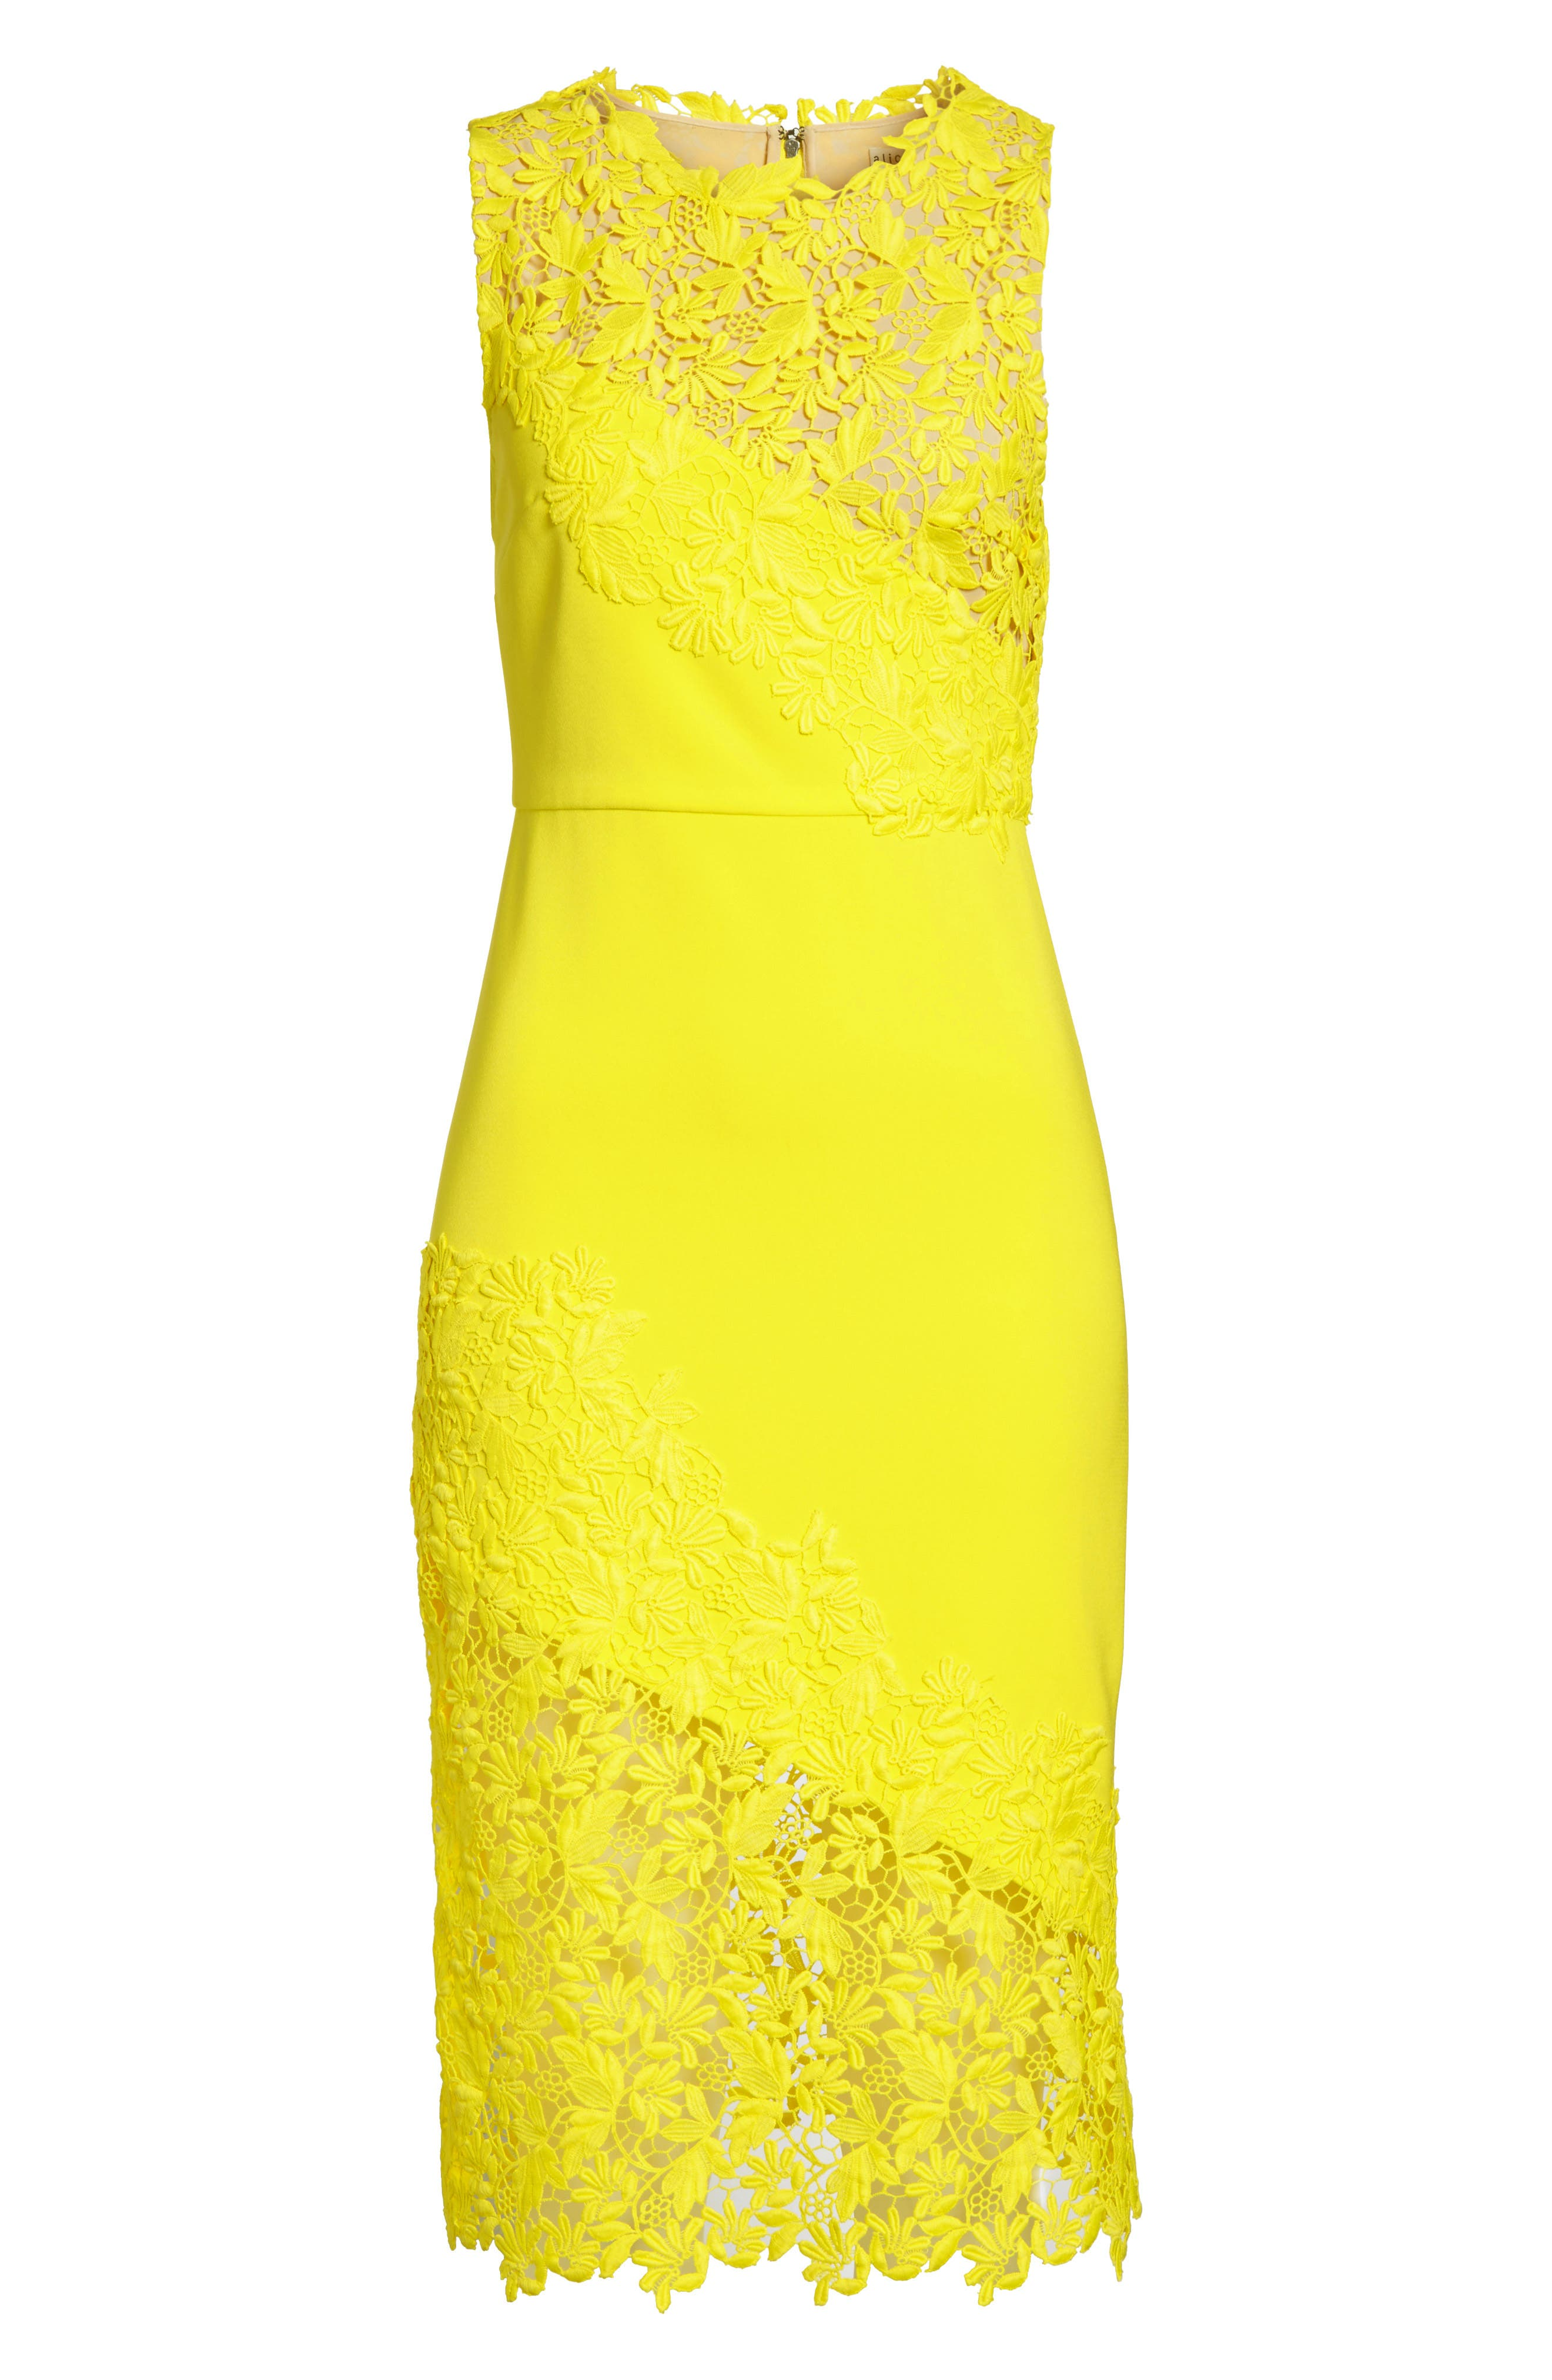 Margy Lace Overlay Body-Con Dress,                             Alternate thumbnail 7, color,                             703